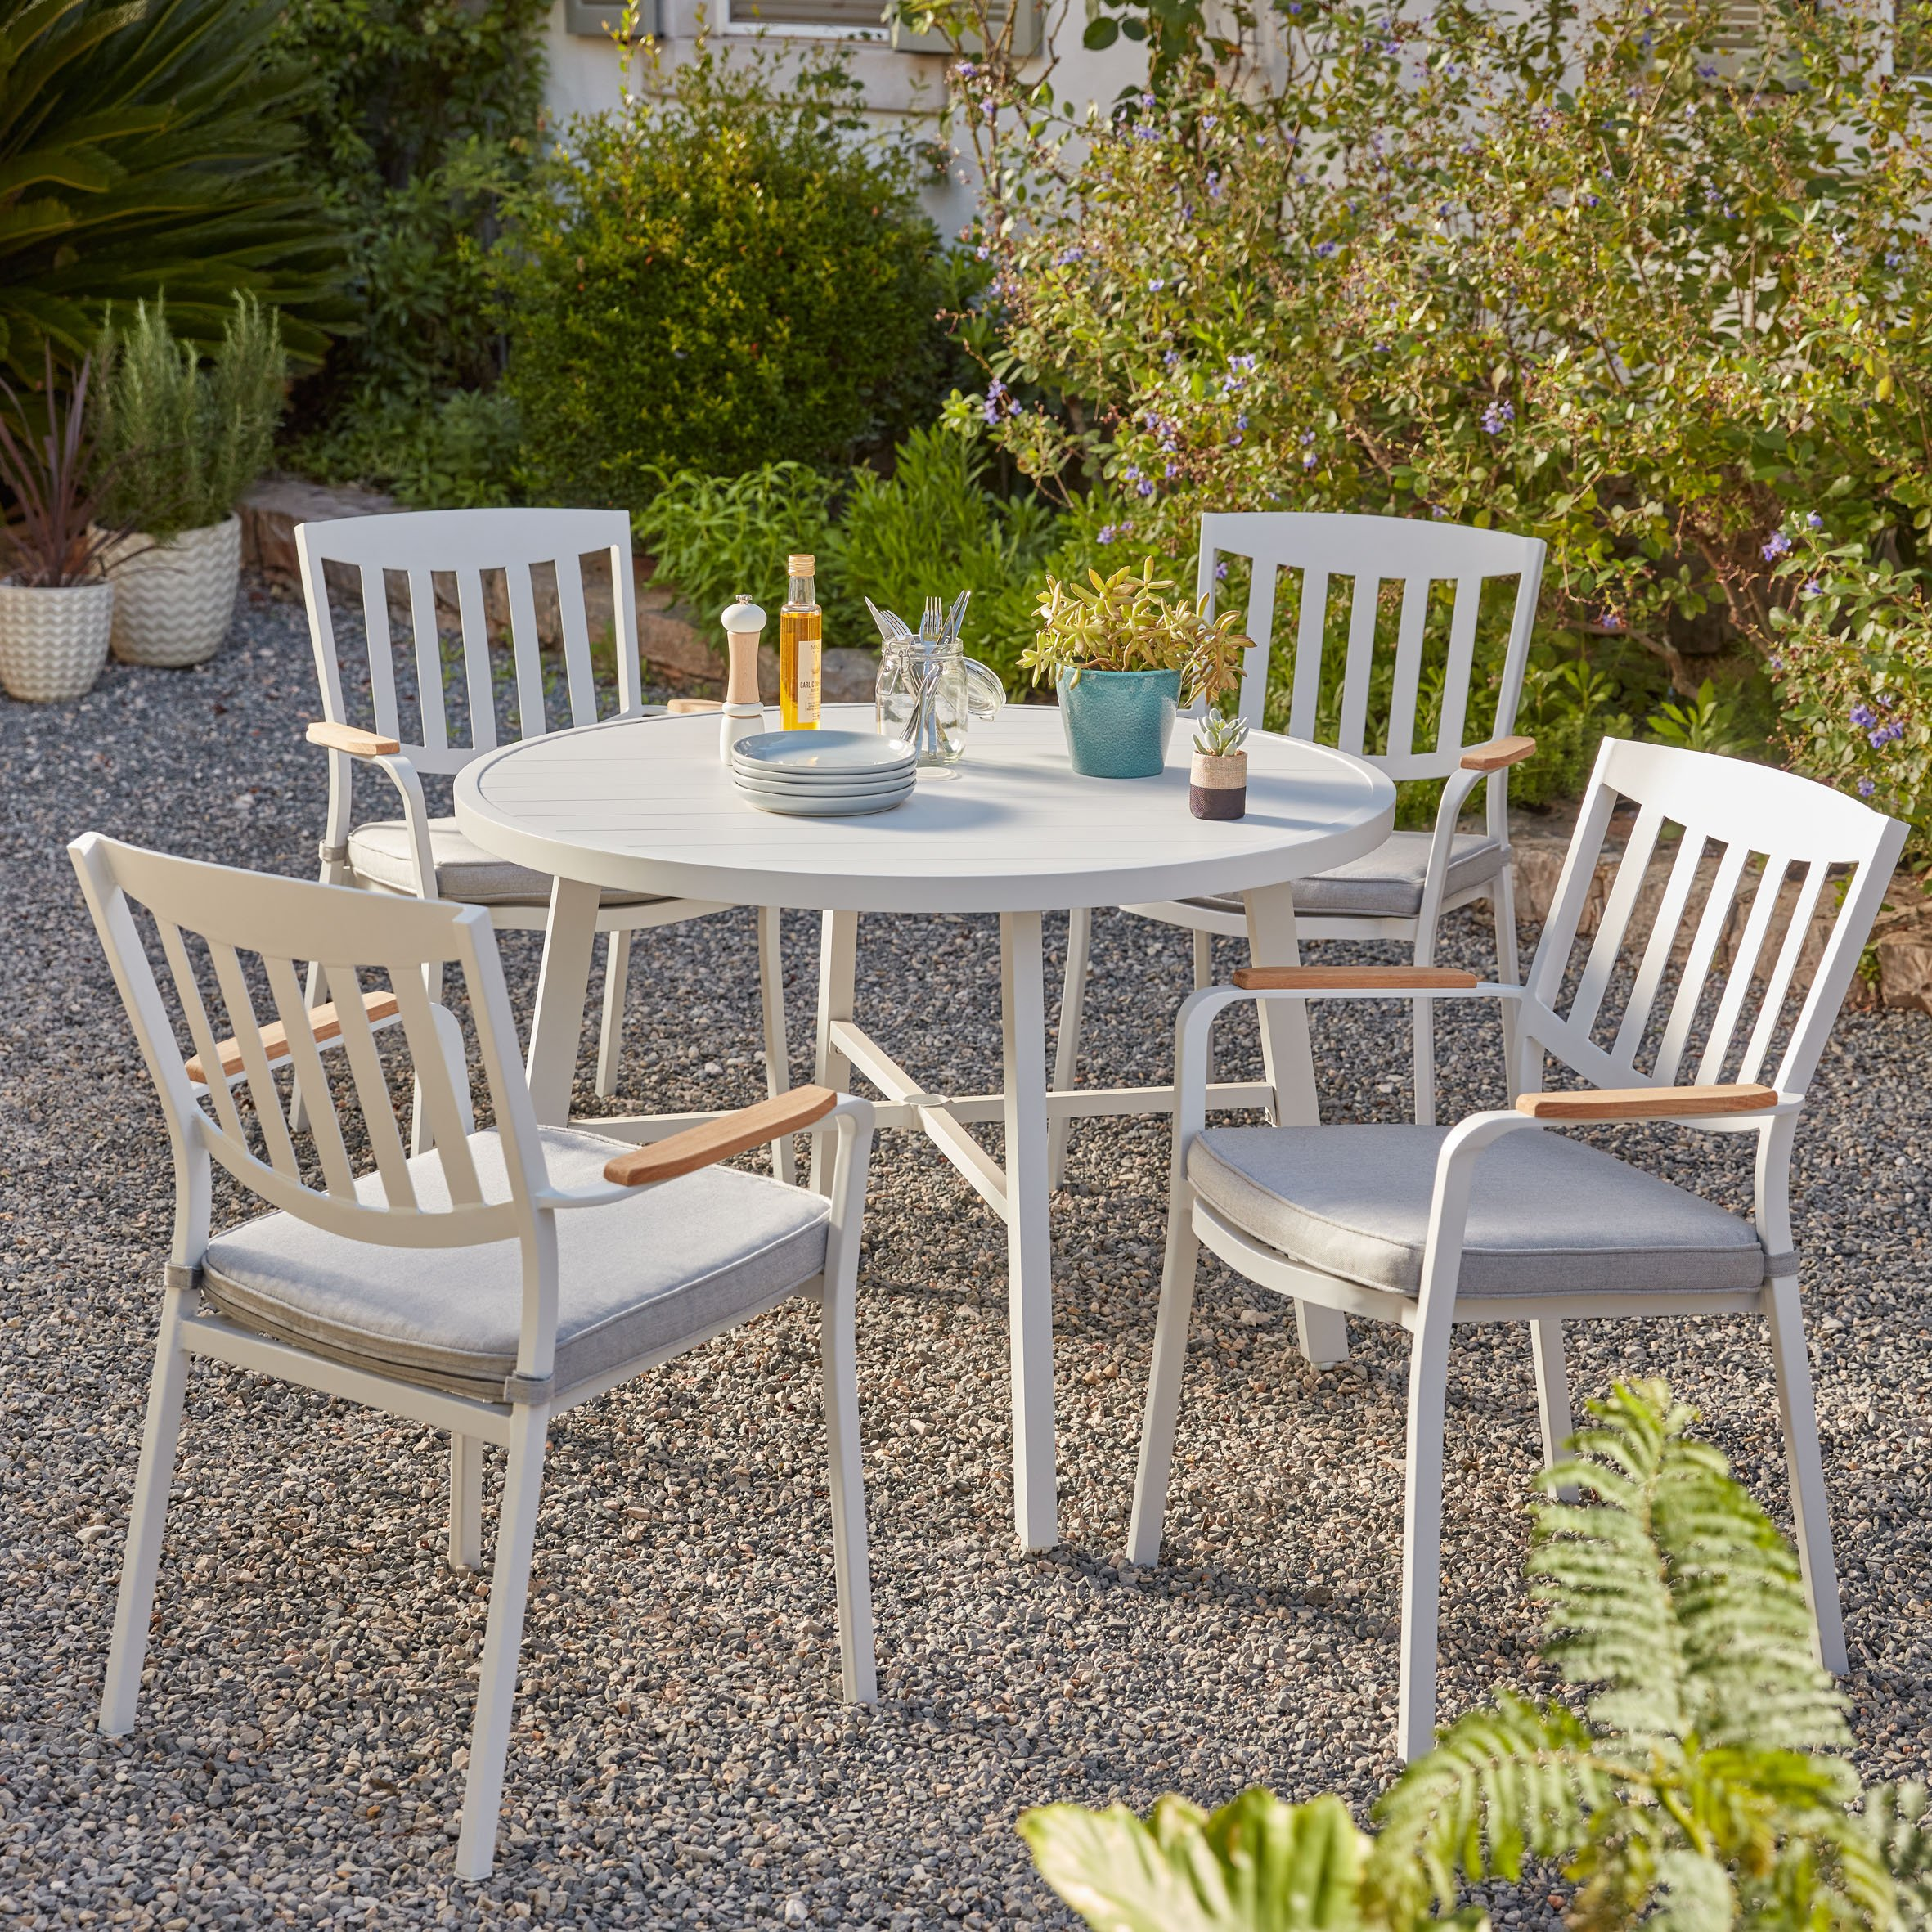 How To Create a White Garden Space